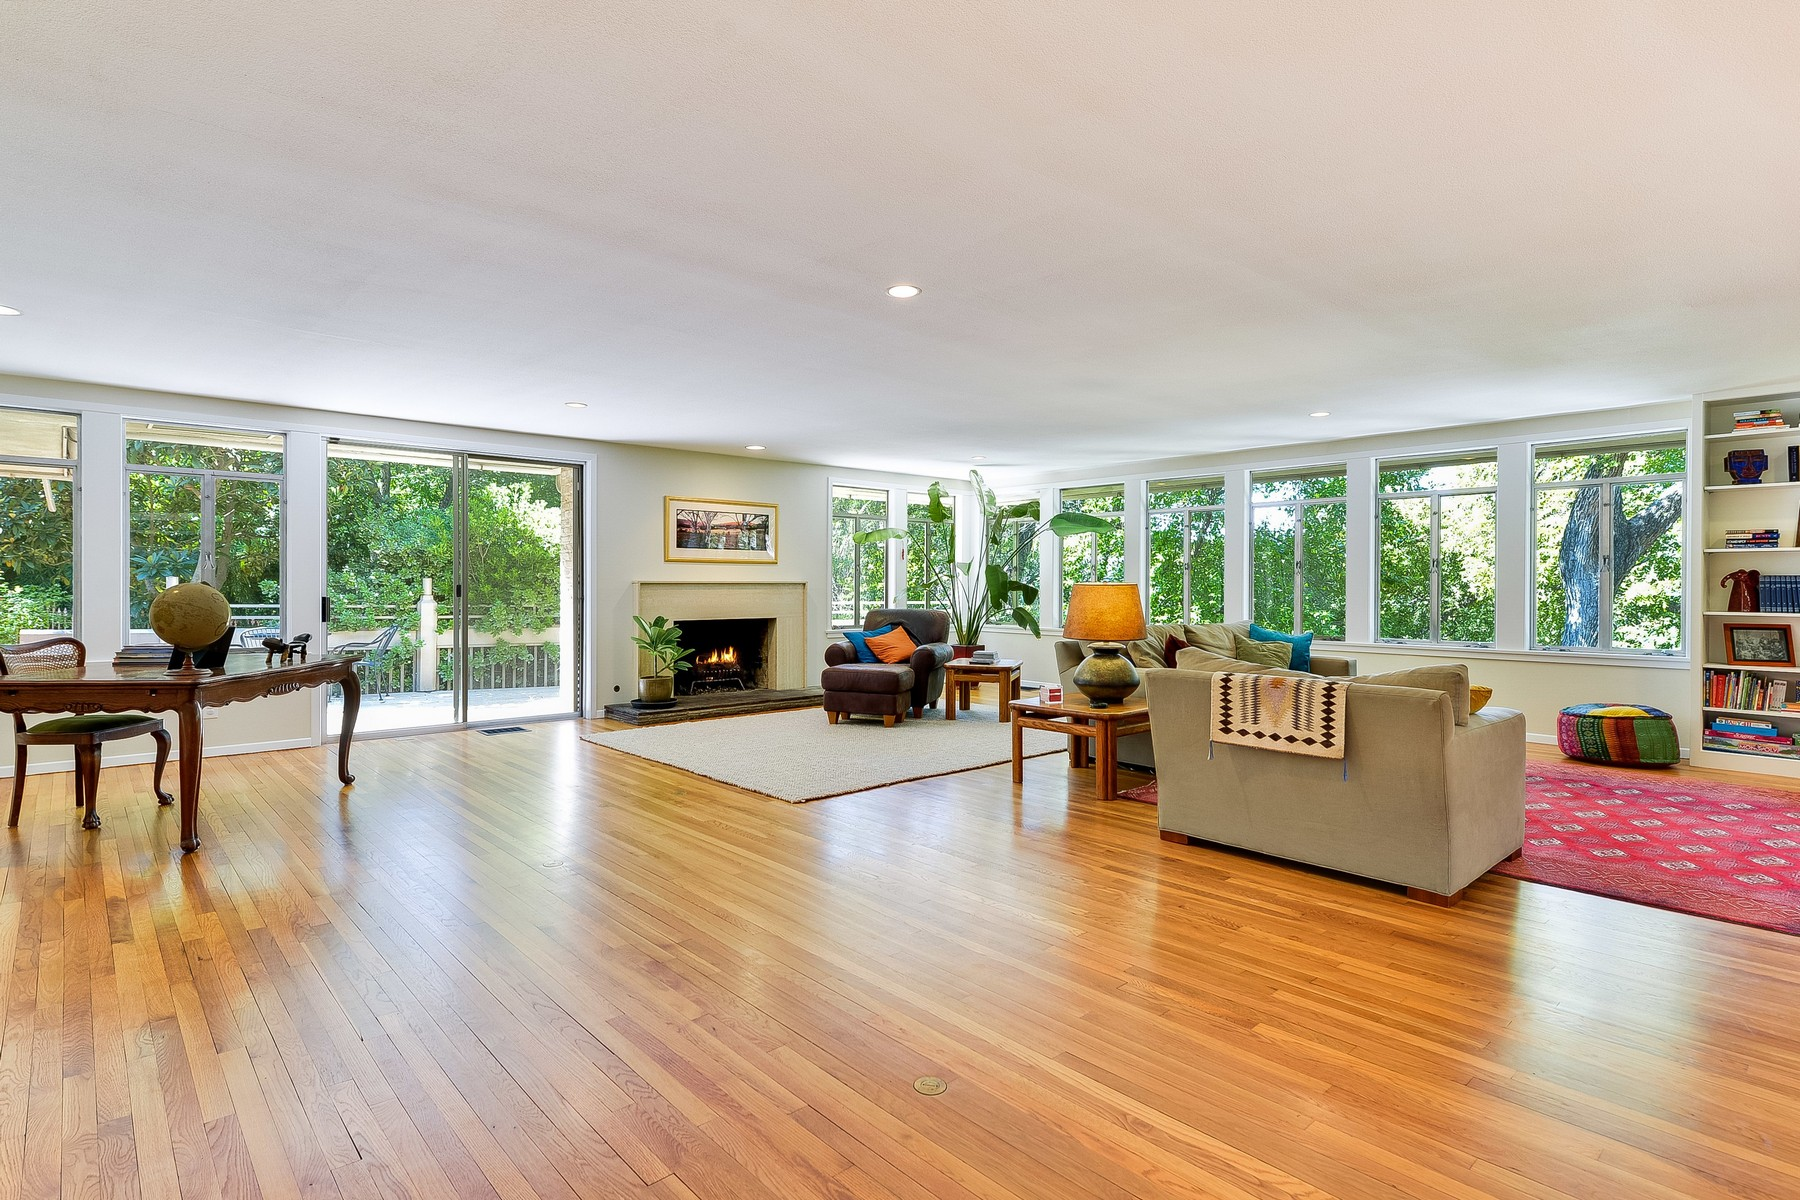 Additional photo for property listing at Stunning Mid-Century Modern Architecture 2311 Shoal Creek Blvd Austin, Texas 78705 United States